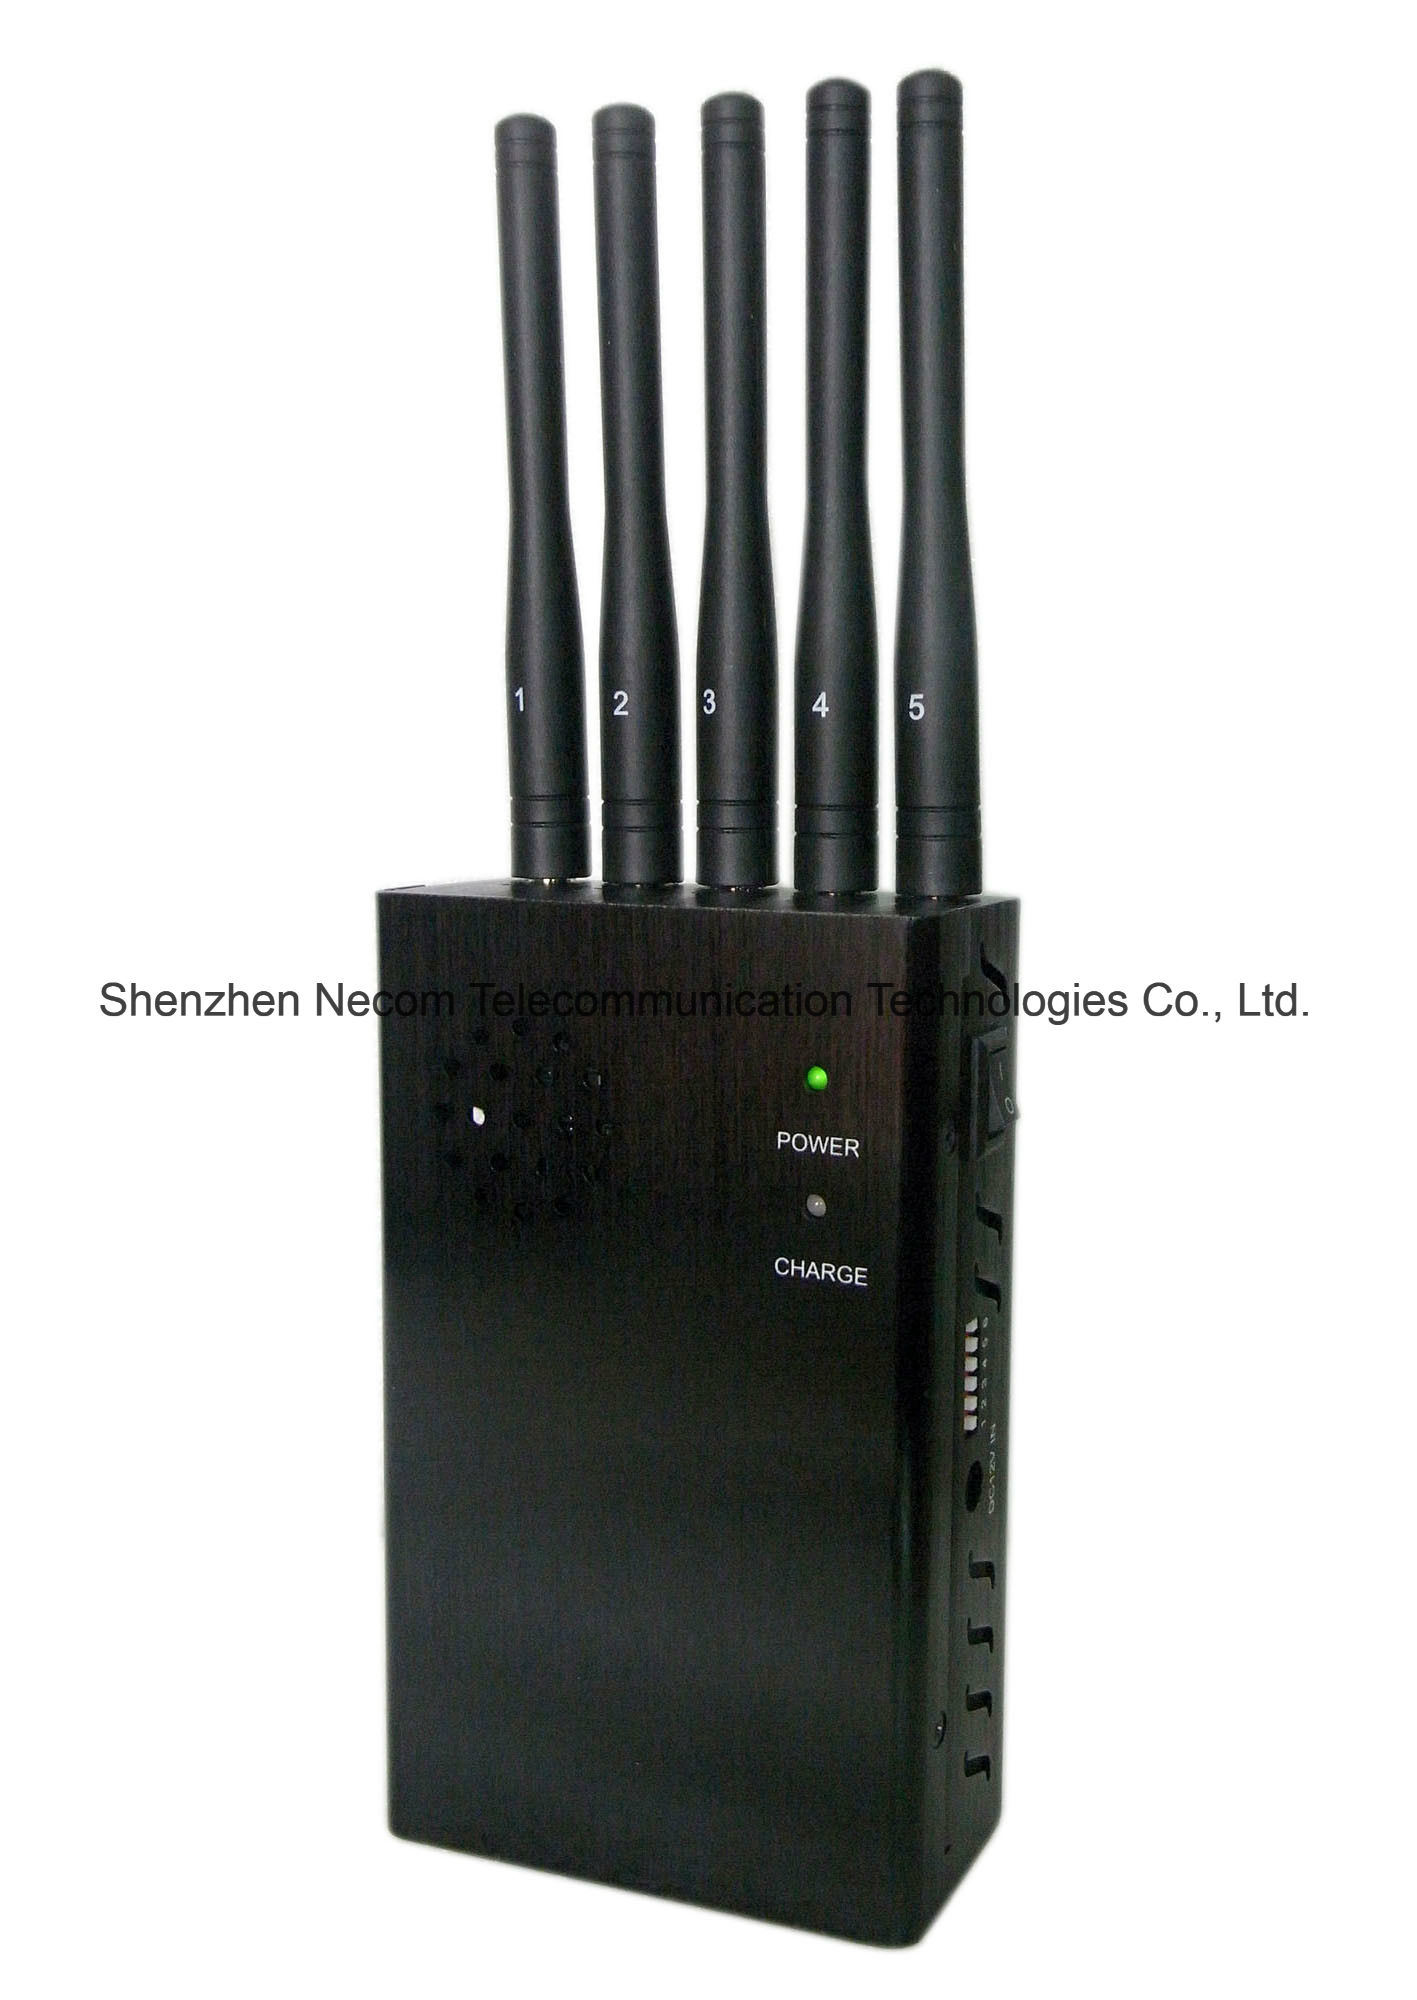 signal blocker iphone update - China 5 Antenna Big Portable Cell Jammer, Portable GPS Jammer, Portable WiFi Jammer, Jamming 2g+3G+4G+Gpsl1 - China 5 Band Signal Blockers, Five Antennas Jammers